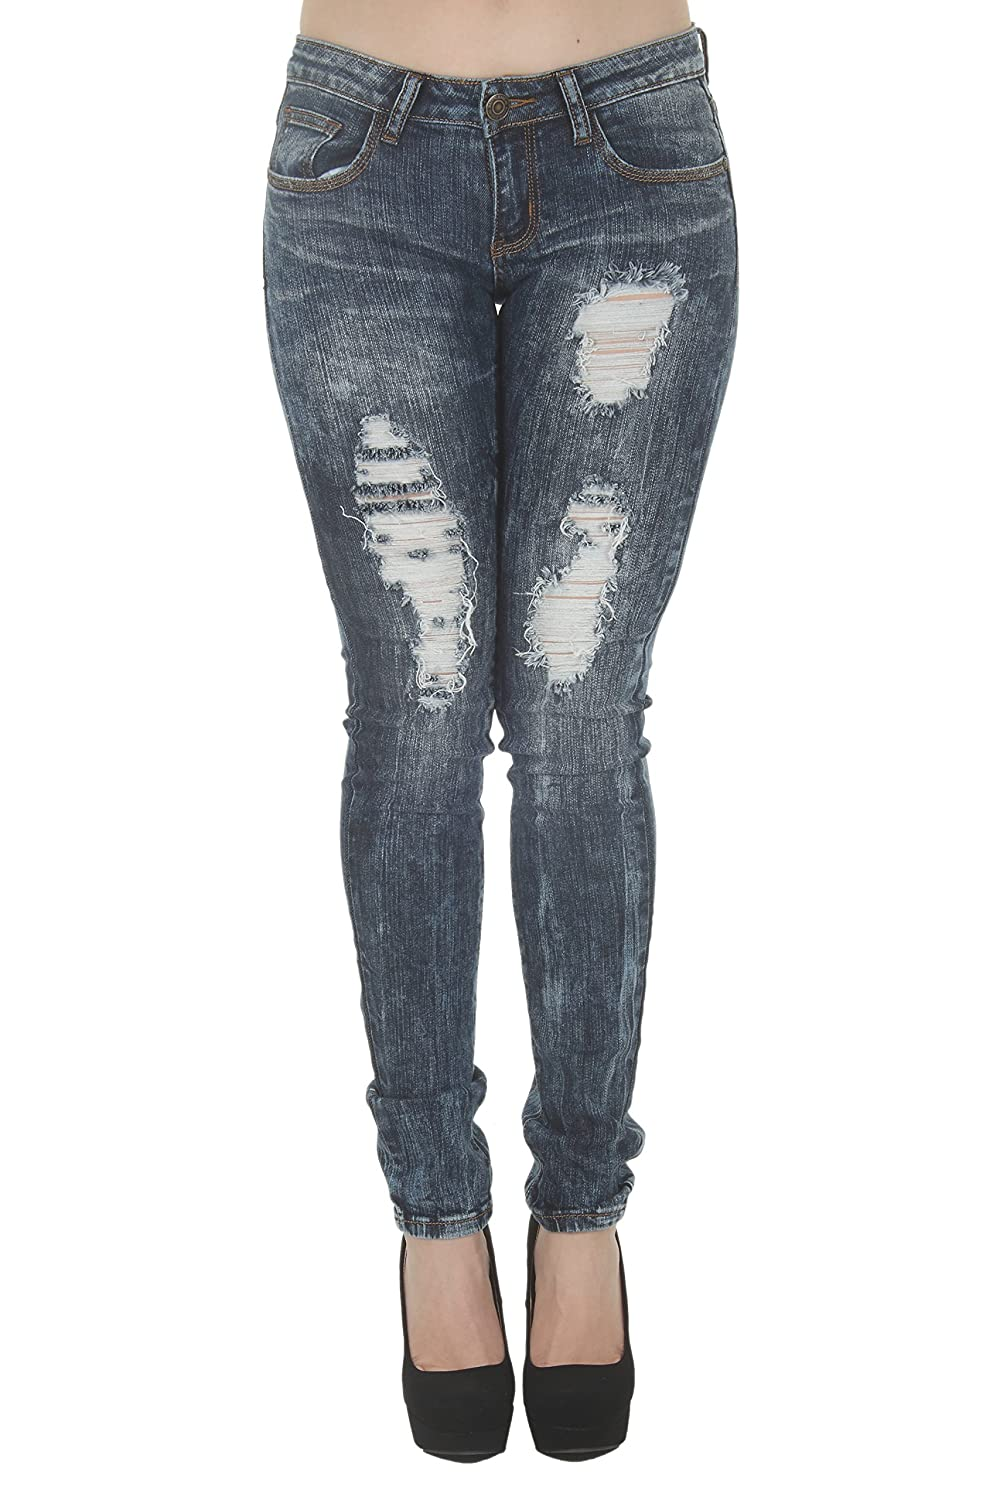 cheap 1A5566 – Women's Juniors Low Rise Distressed Destroyed ...